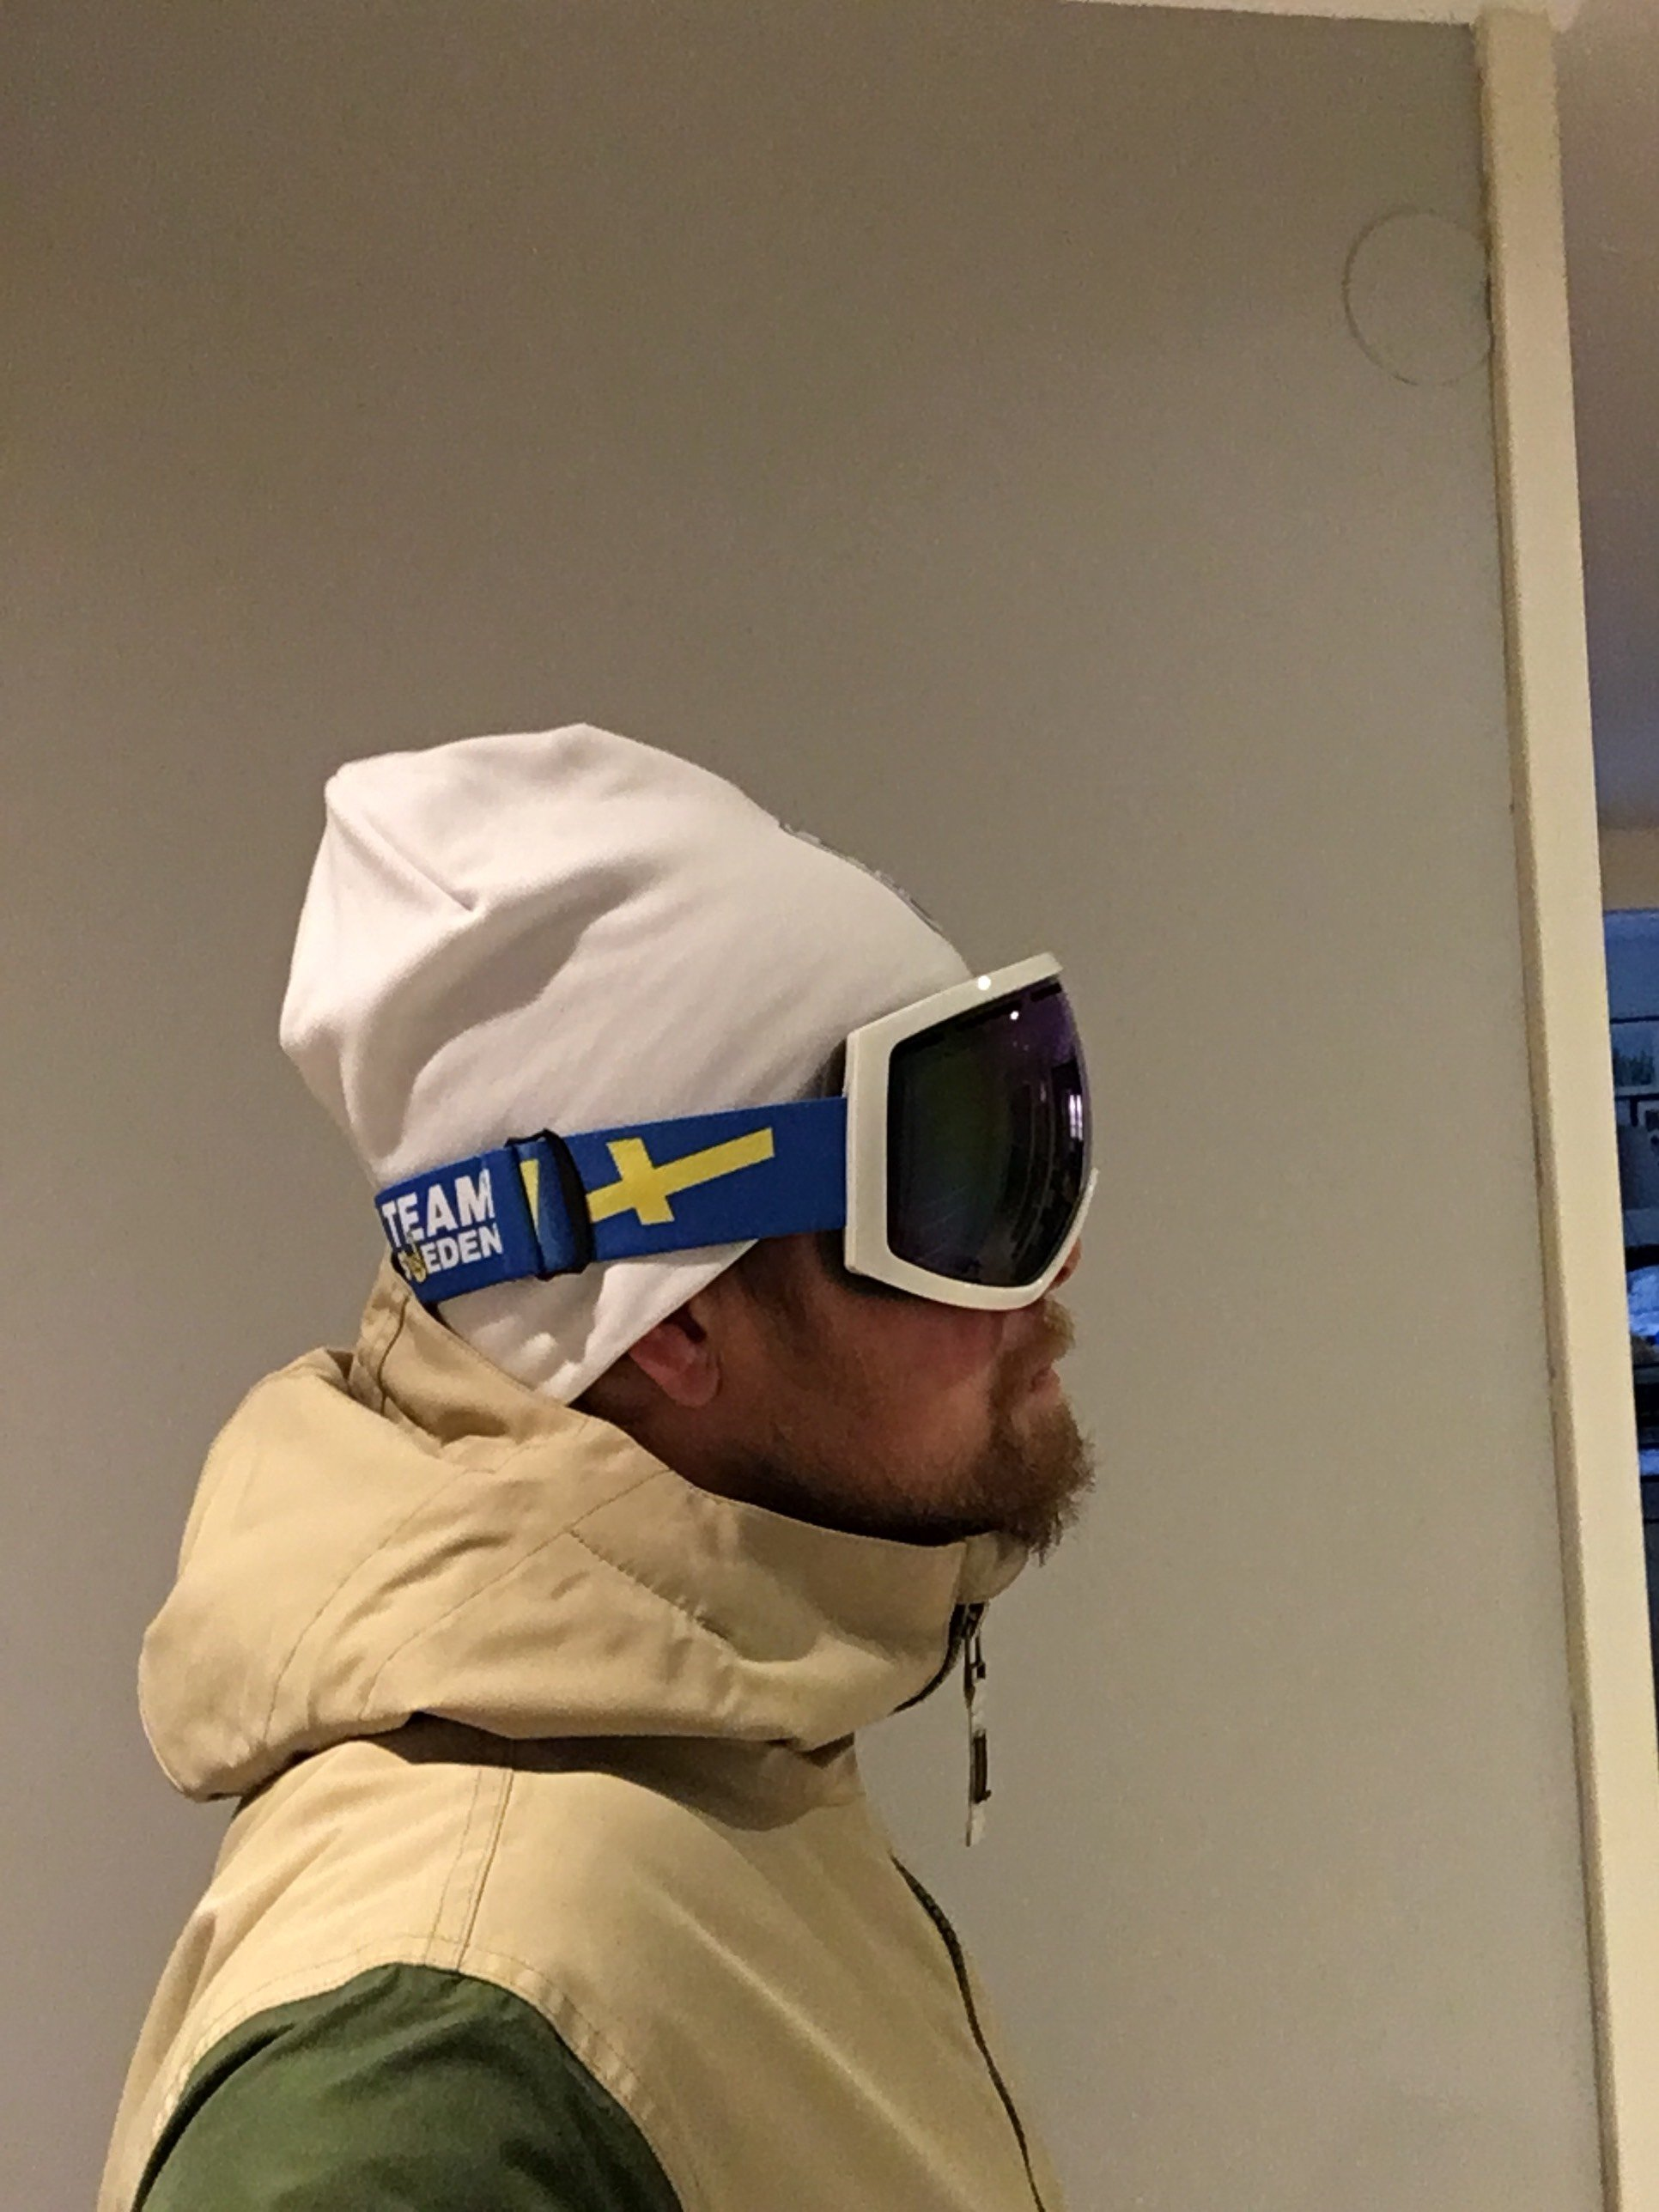 Ski Beanie Afterski Team Sweden